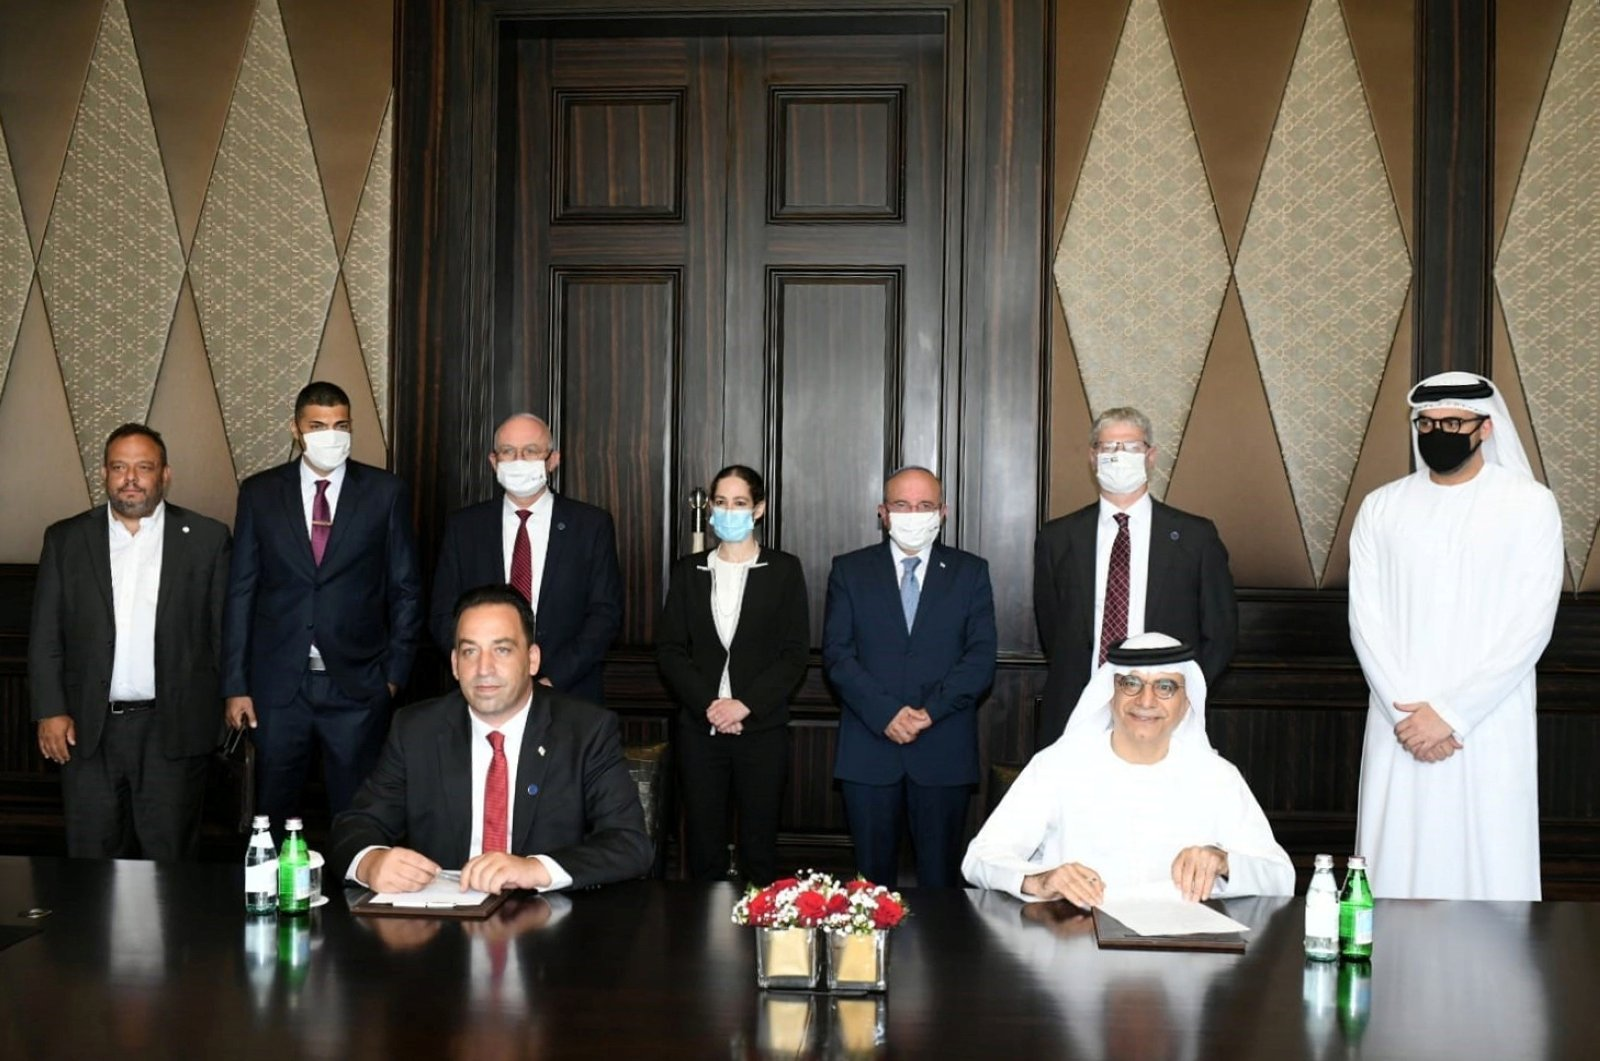 Israeli National Security Advisor Meir Ben-Shabbat stands as the Israeli and Emirati officials sign documents in Abu Dhabi, United Arab Emirates, Sept. 1, 2020. (REUTERS Photo)